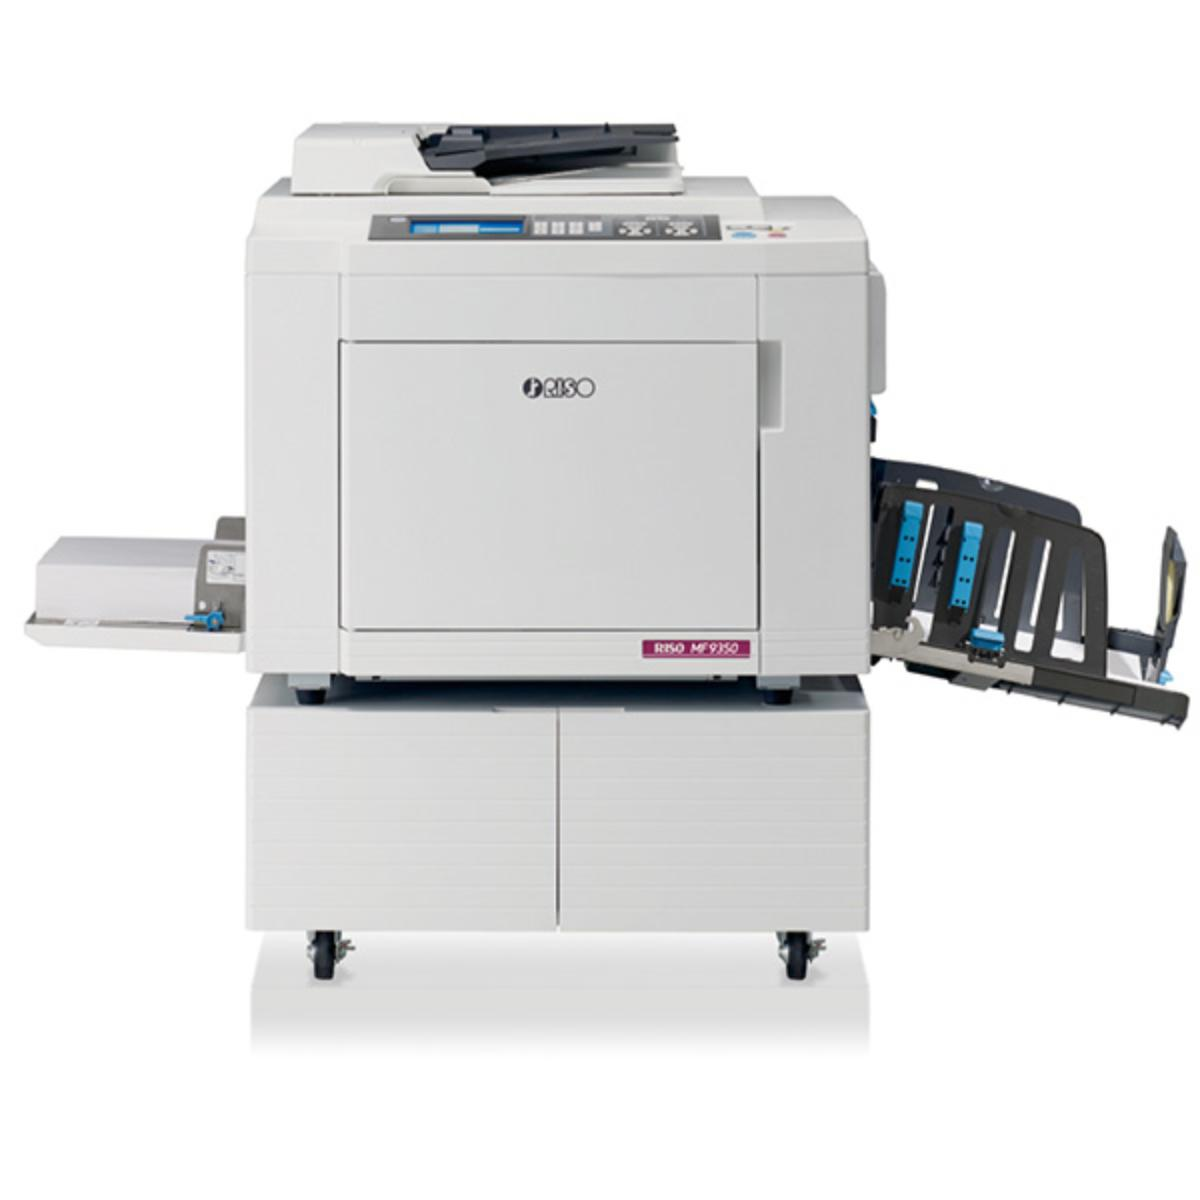 Riso MF9350 Duplicator - printer